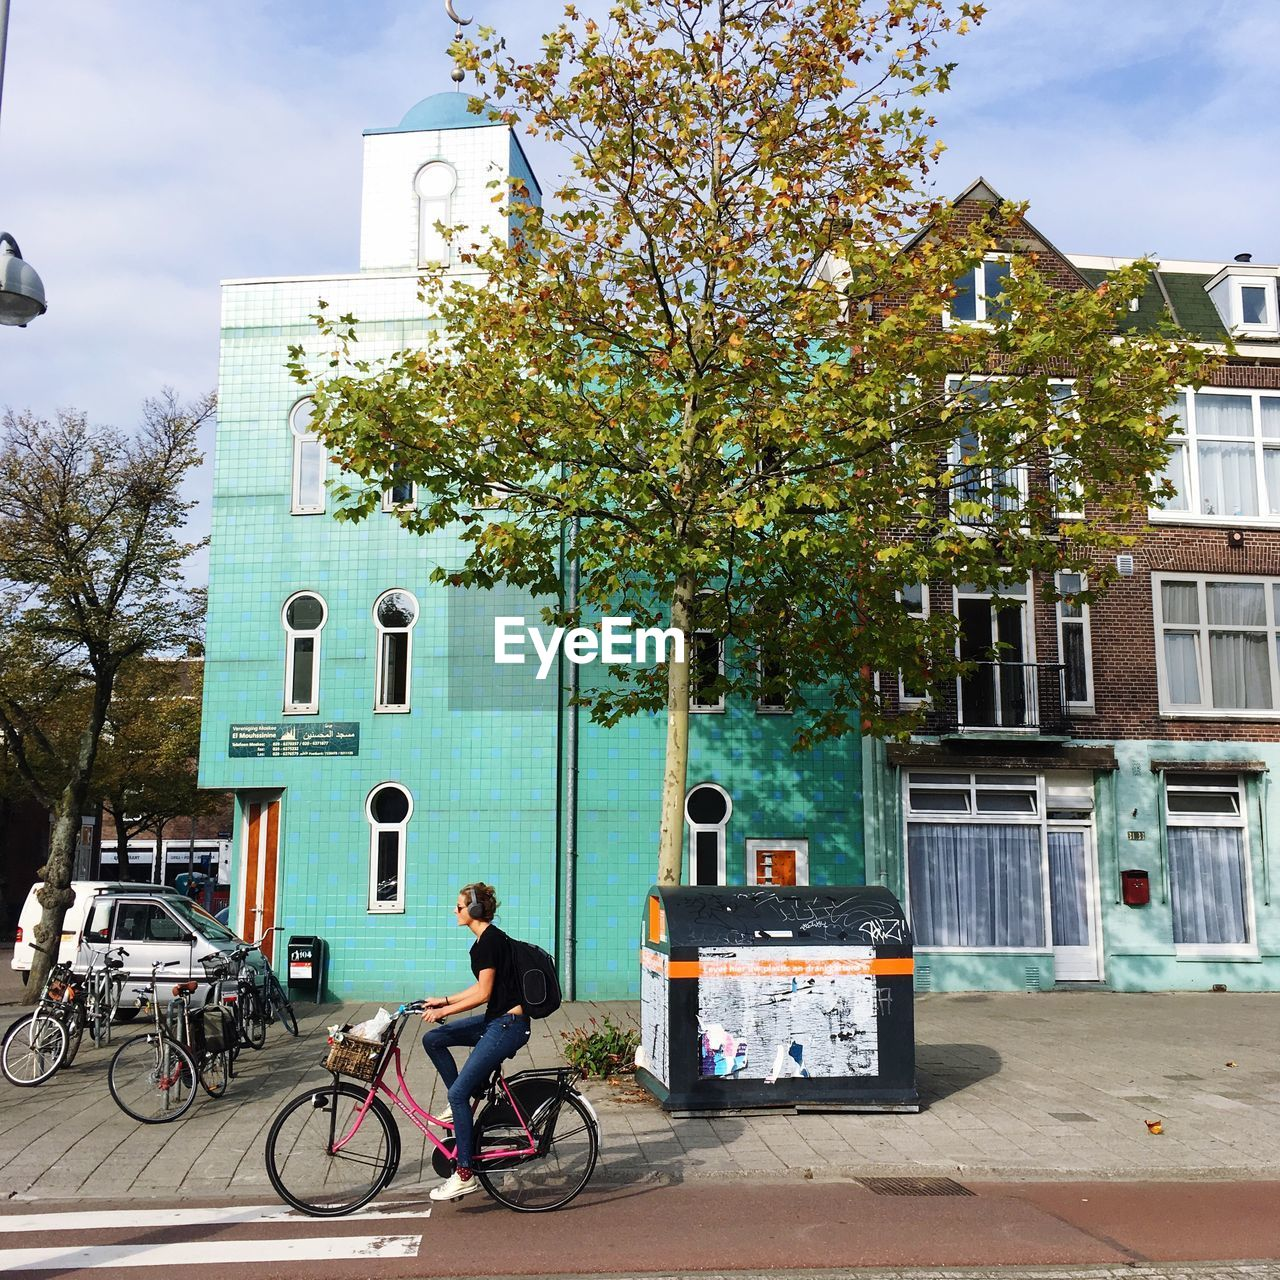 MAN RIDING BICYCLE ON STREET AGAINST BUILDINGS